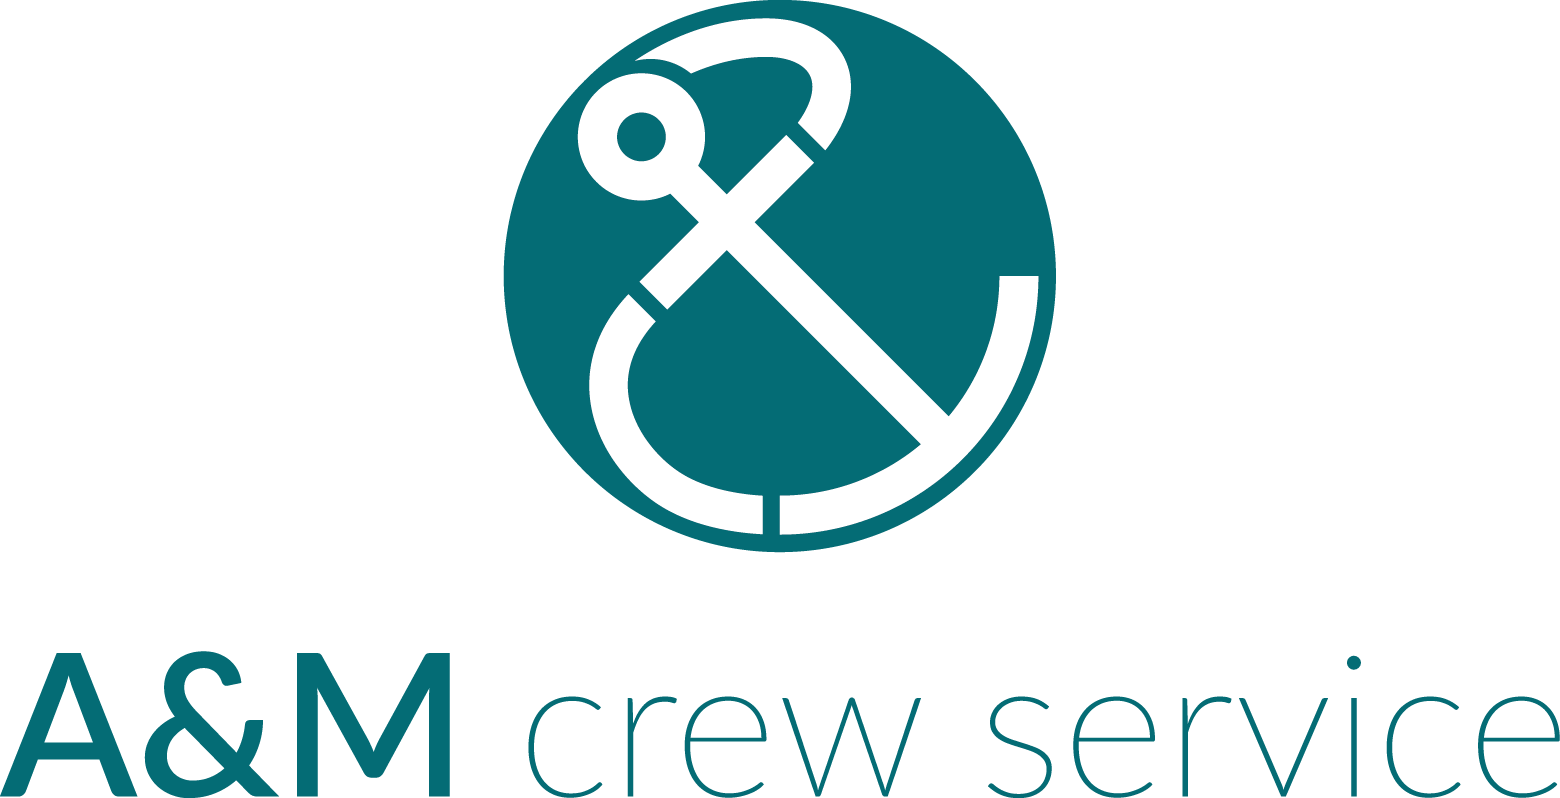 A&M Crewservice